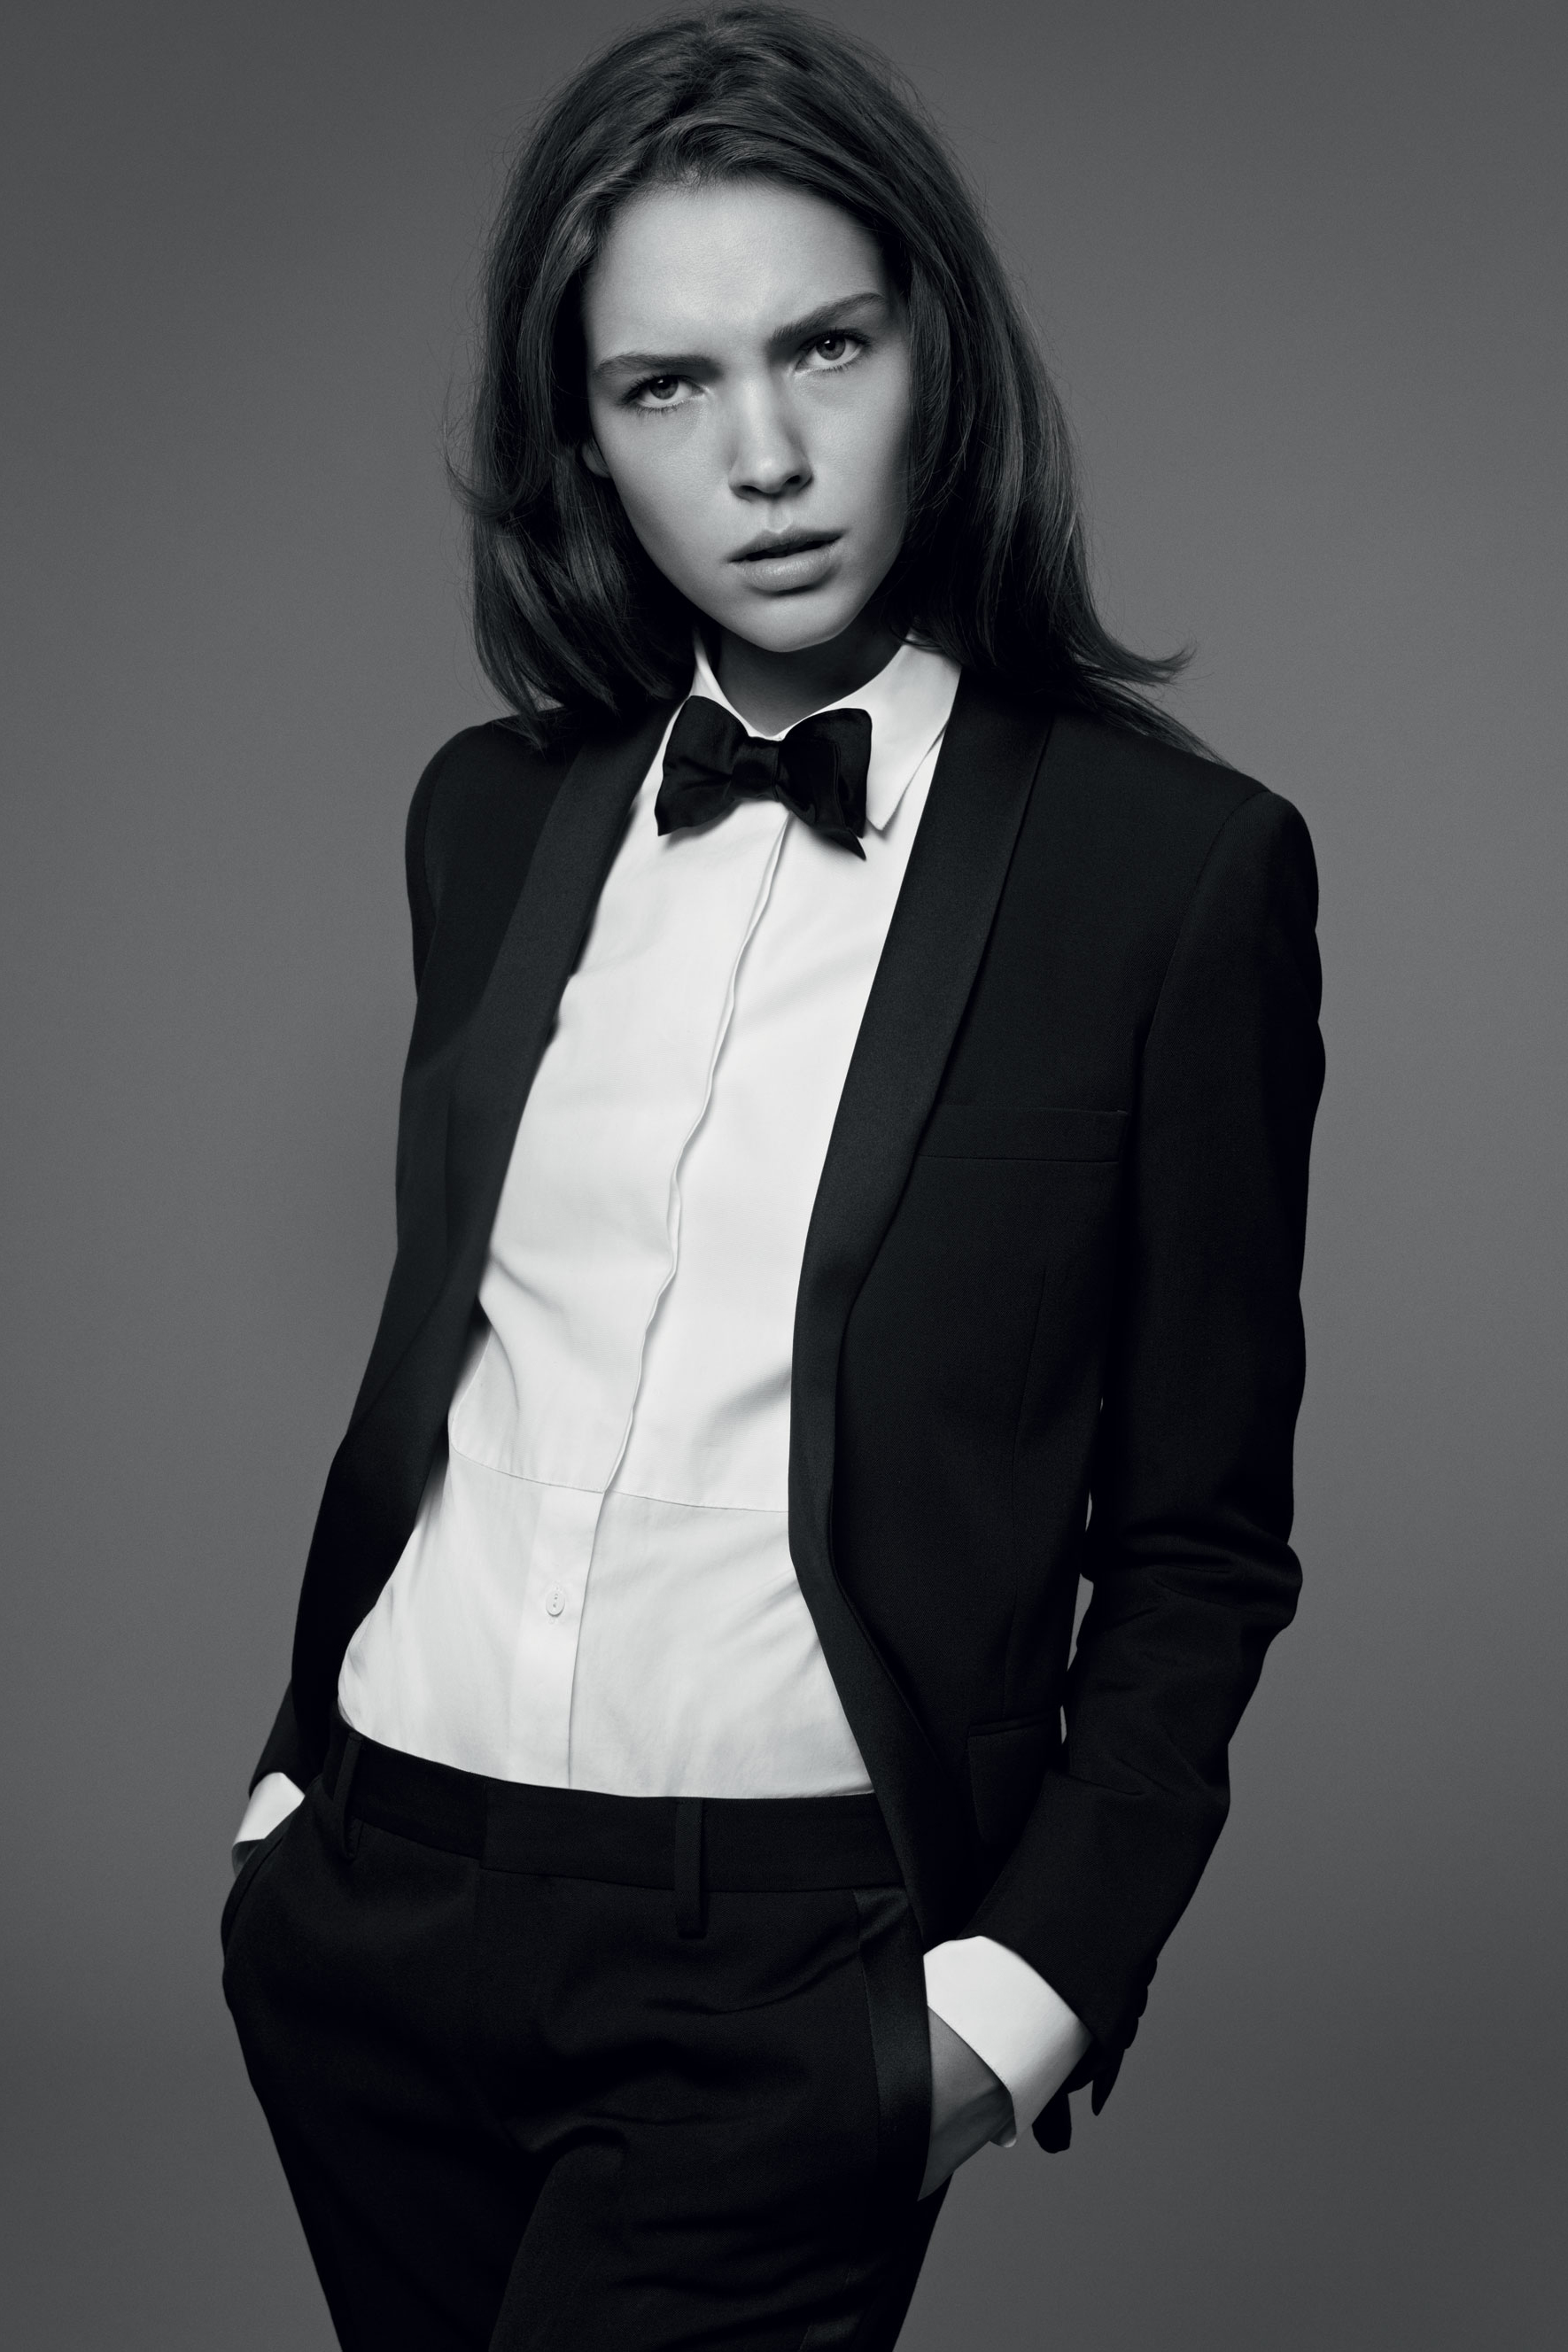 Campaign shot for The Gentlewoman